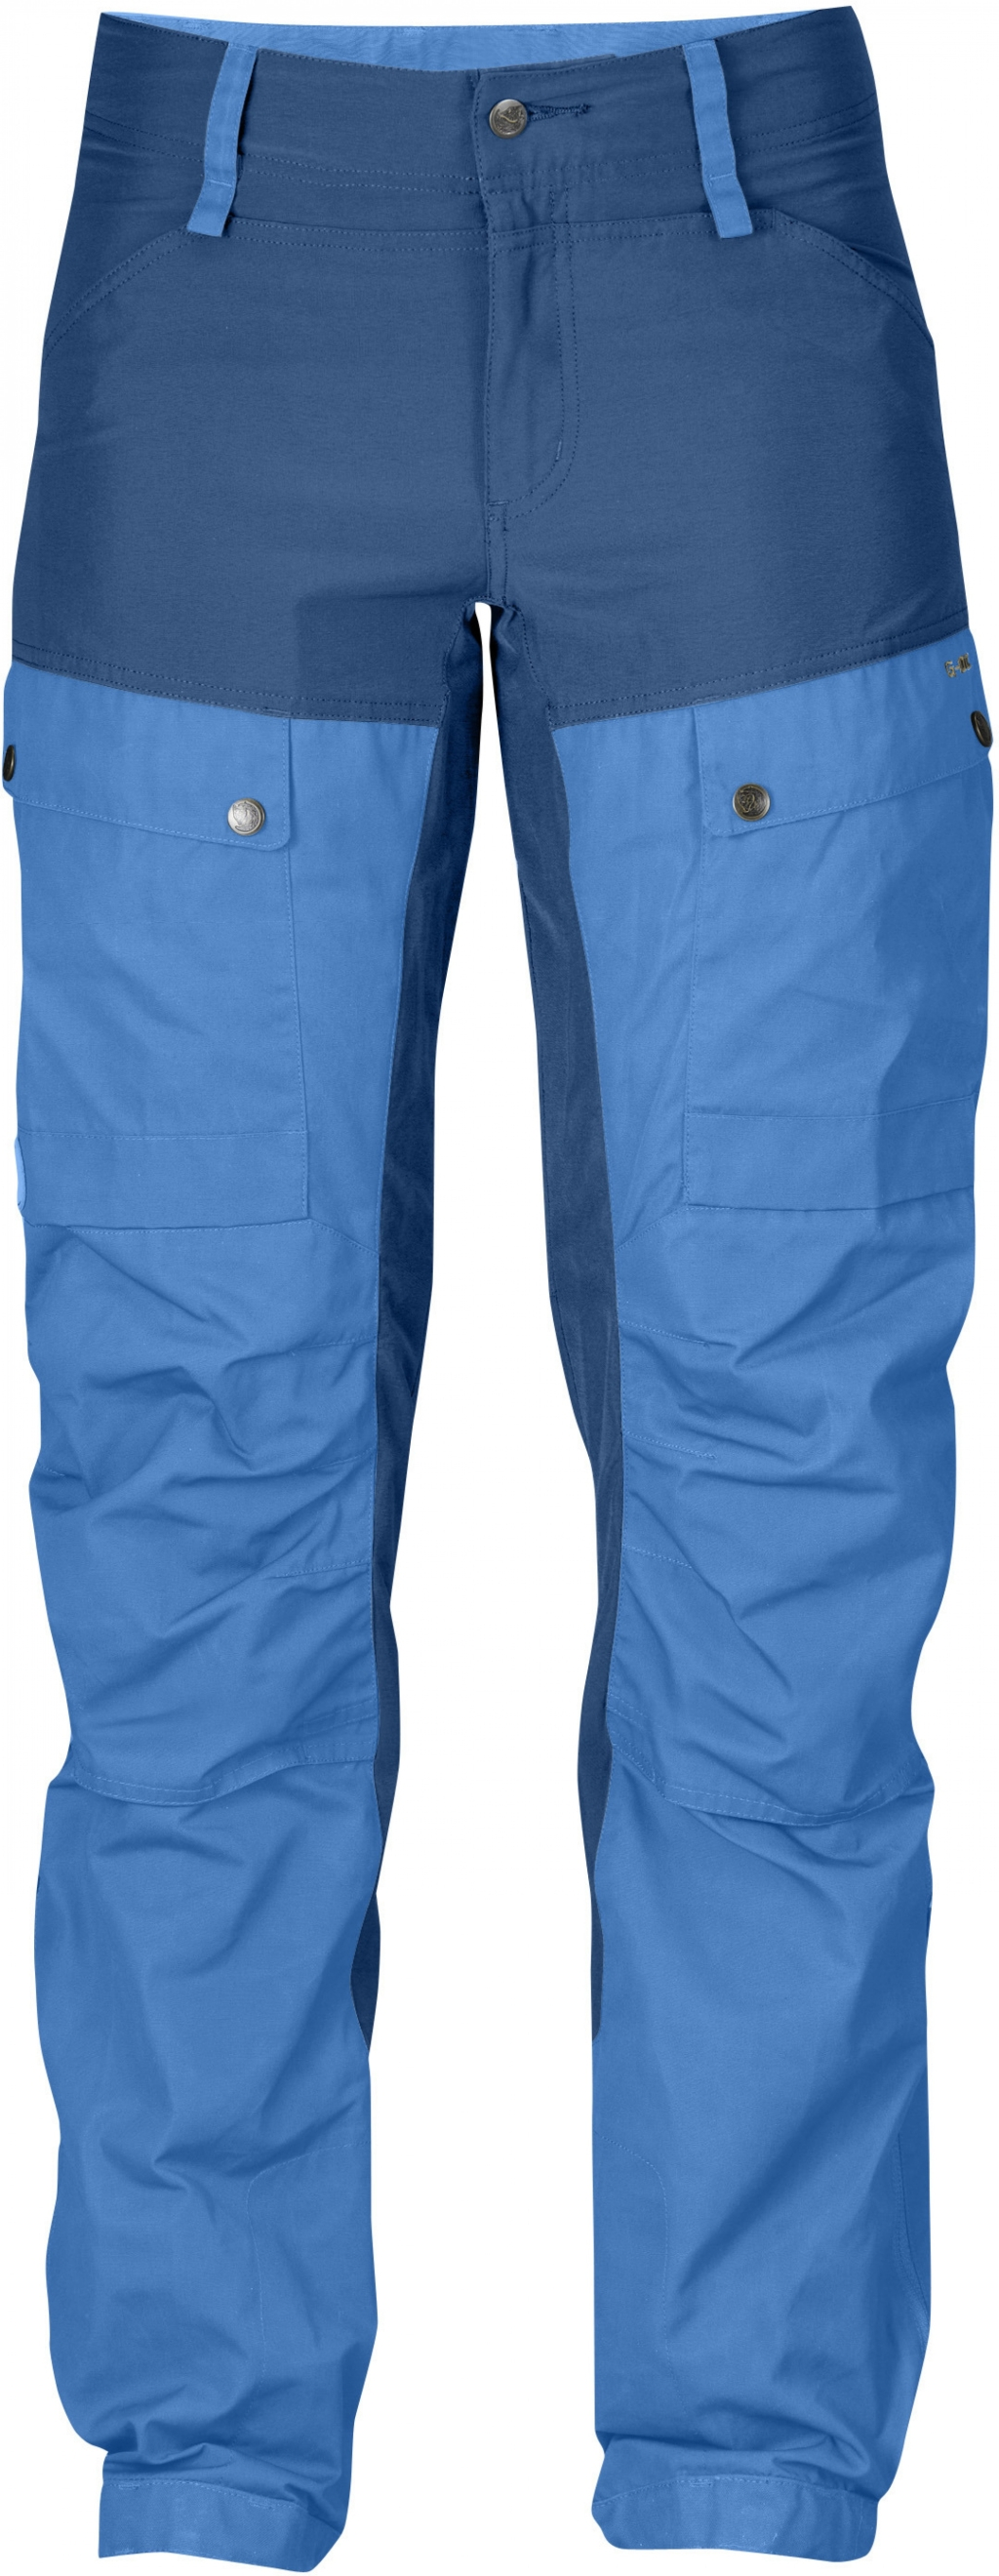 FjallRaven Keb Trousers W Curved UN Blue-30